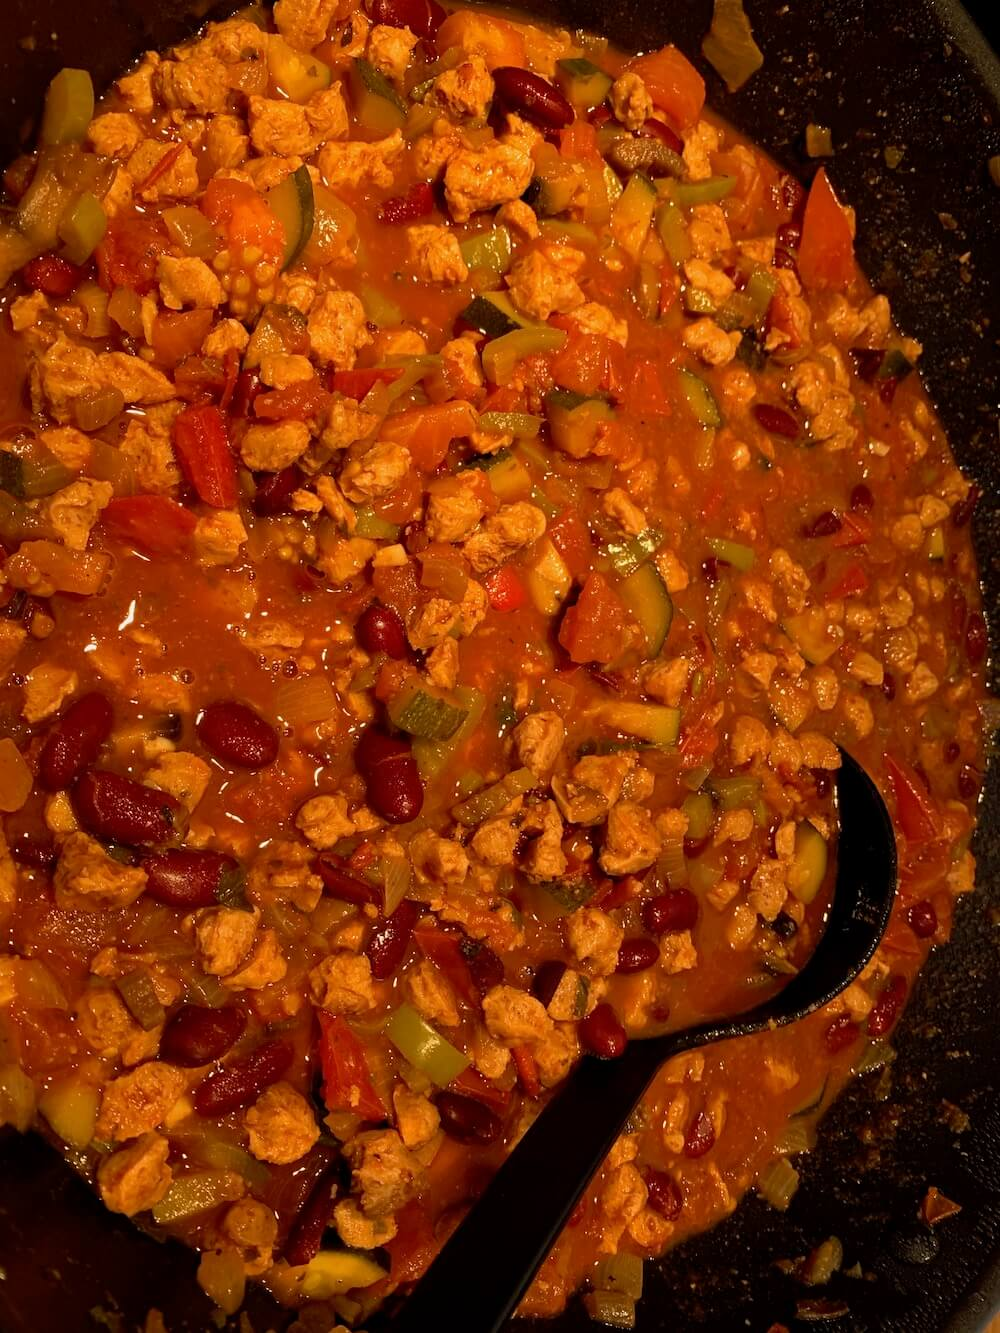 Chilli-sin-carne in a pan